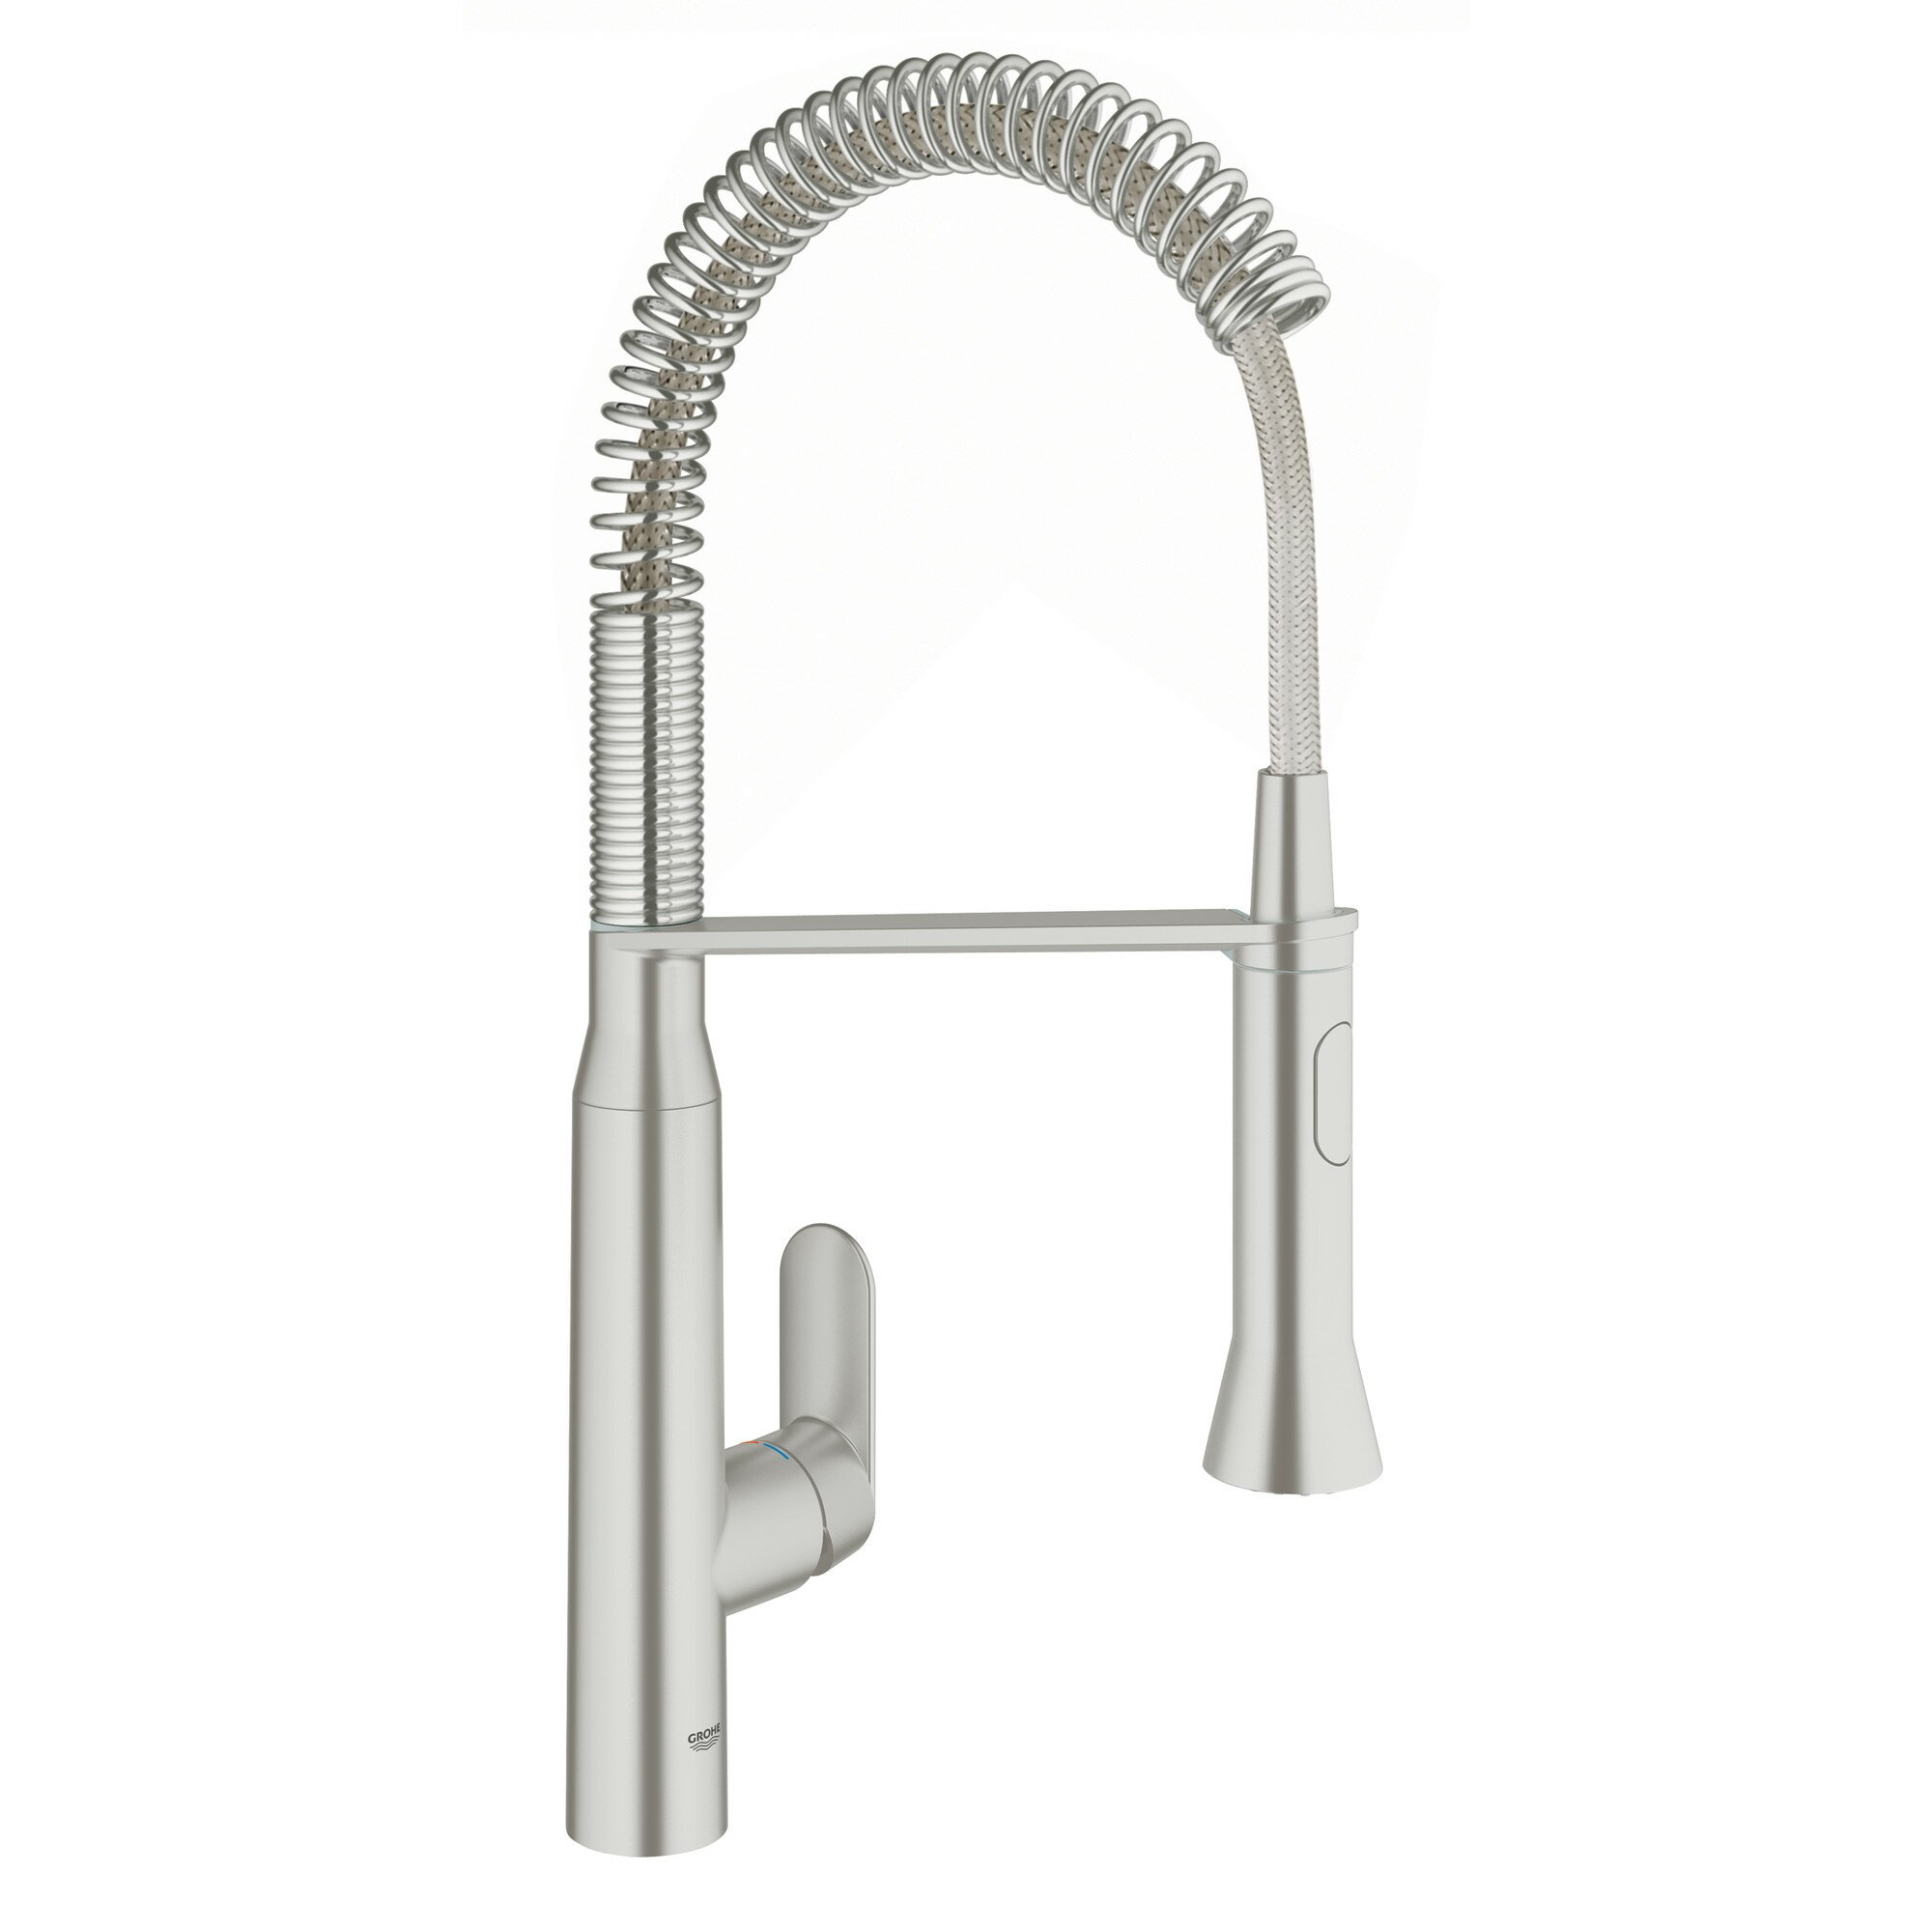 Grohe Kitchen Faucet Parts Grohe Kitchen Faucets Manual House Decor